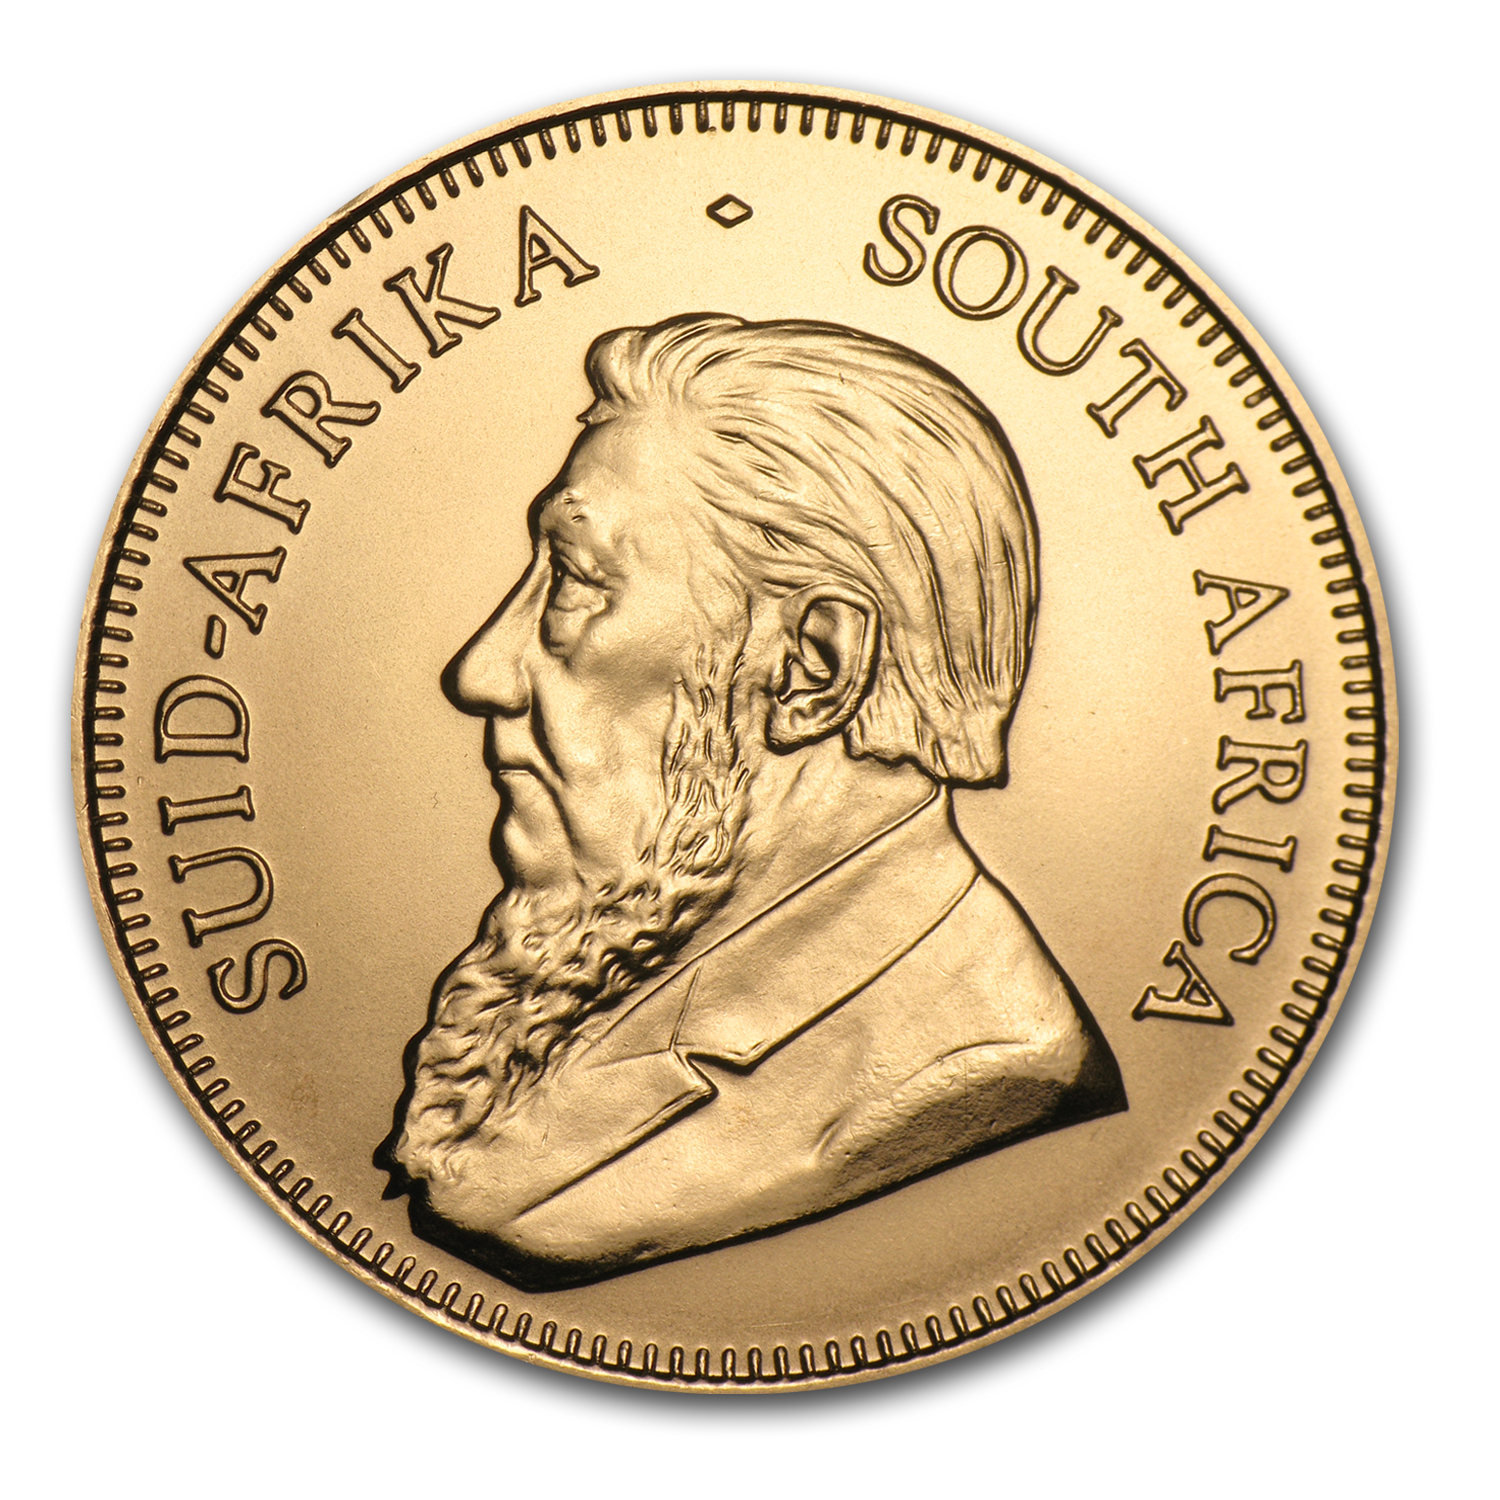 2016 South Africa 1/2 oz Gold Krugerrand